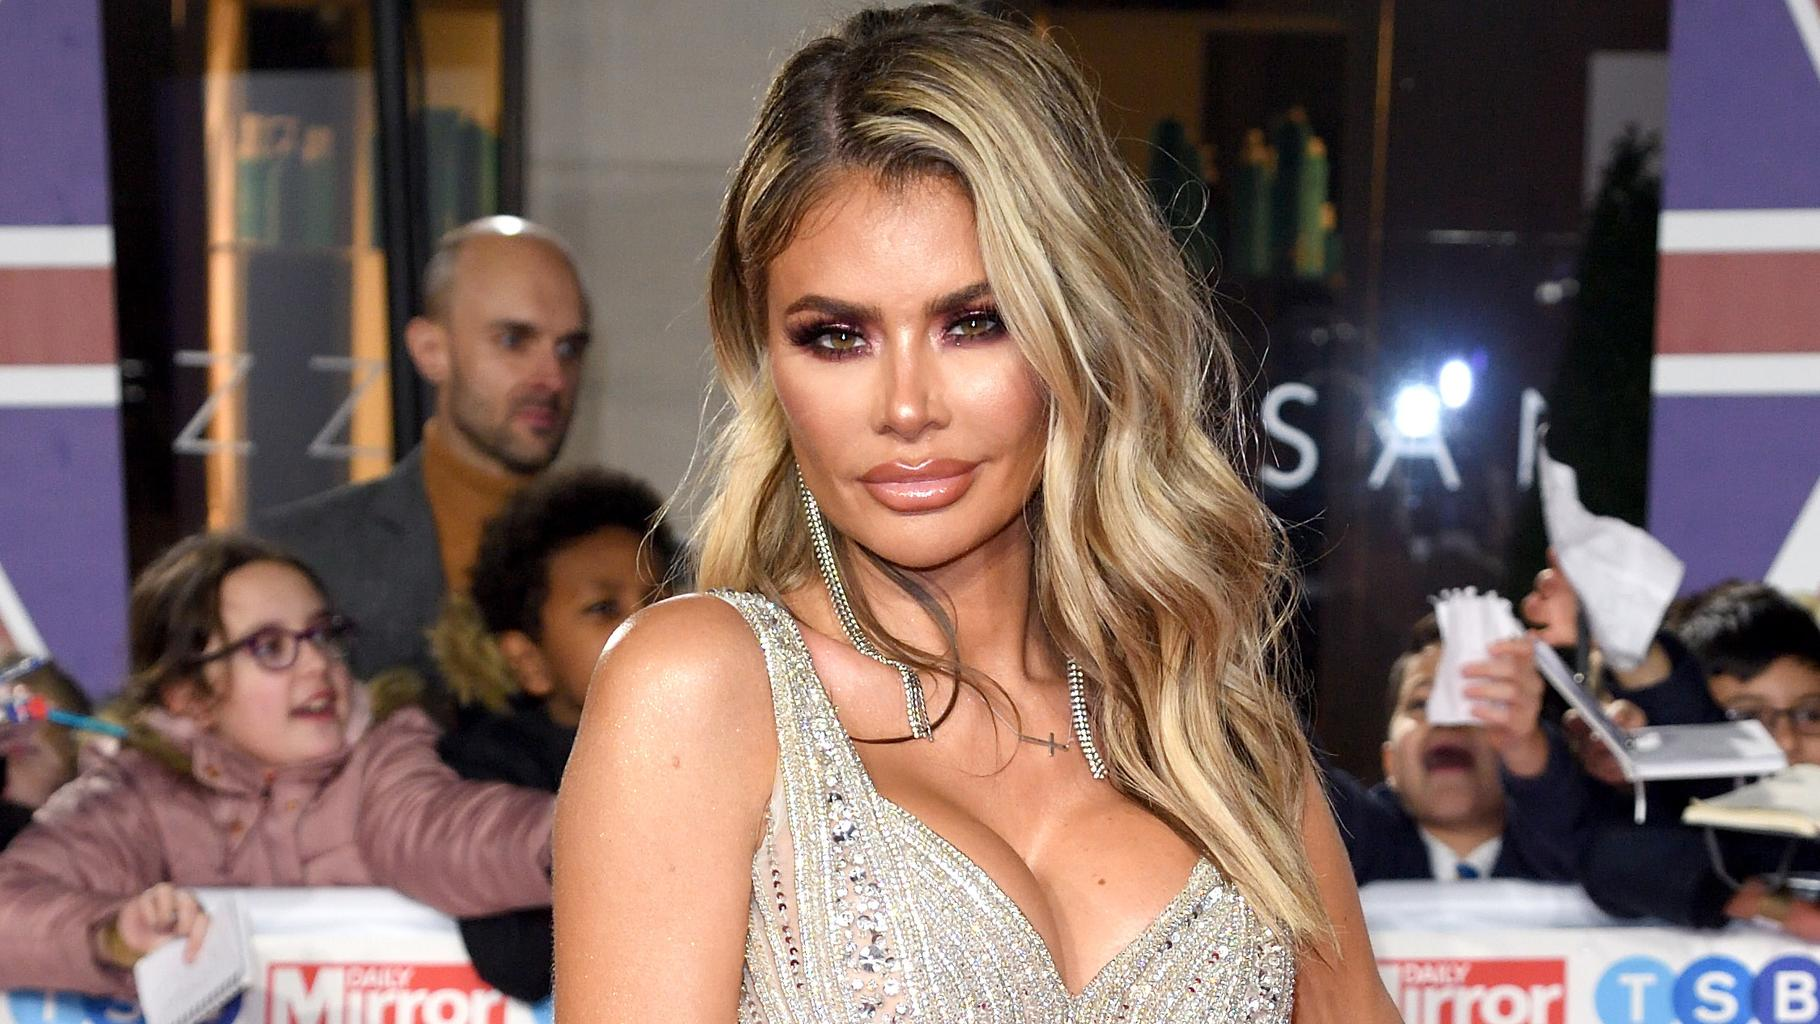 TOWIE's Chloe Sims will not be quitting the reality TV show